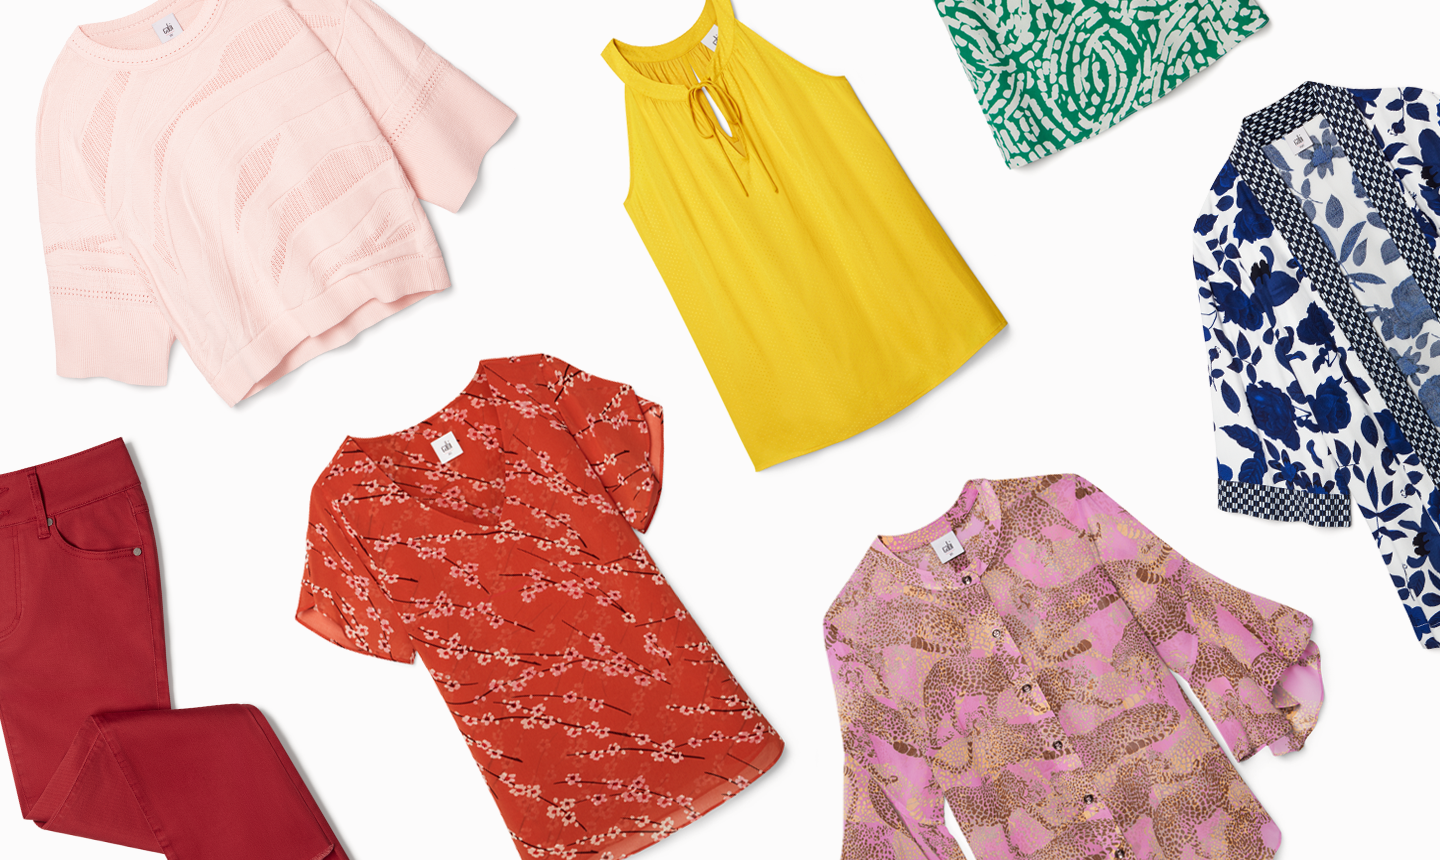 spring hues: your personality and your favorite color